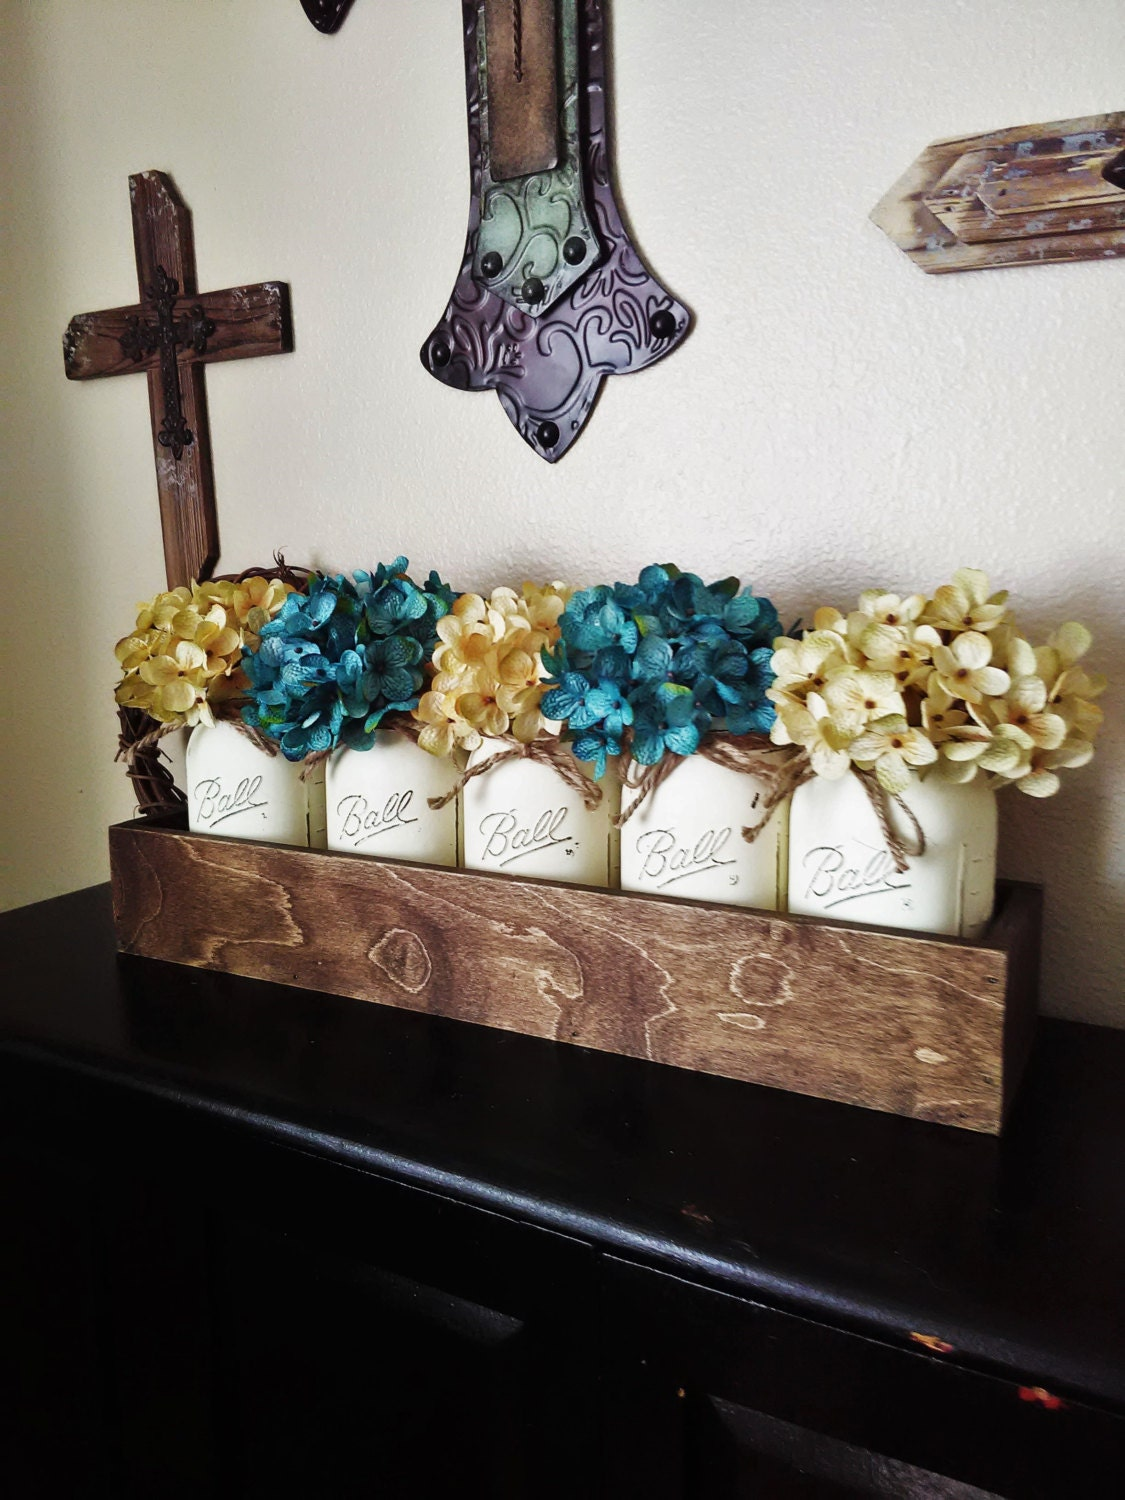 Wedding Present Table Decorations : Table Decor New Home Gift Wedding Gift by CountryHomeandHeart